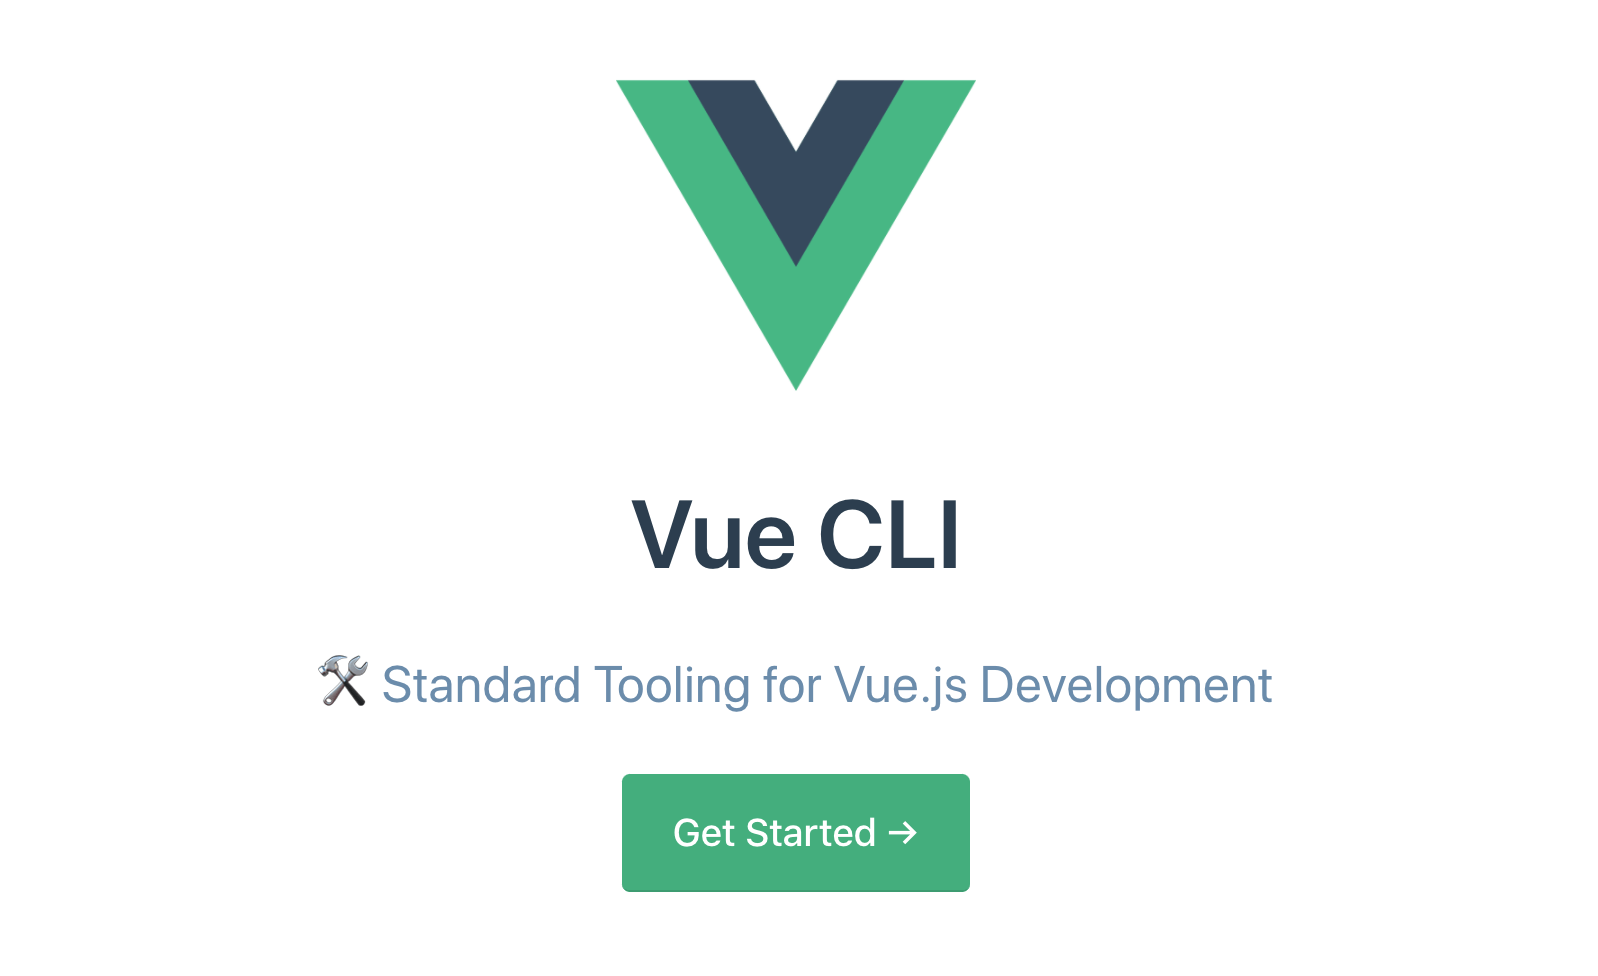 New features in Vue CLI 3 0